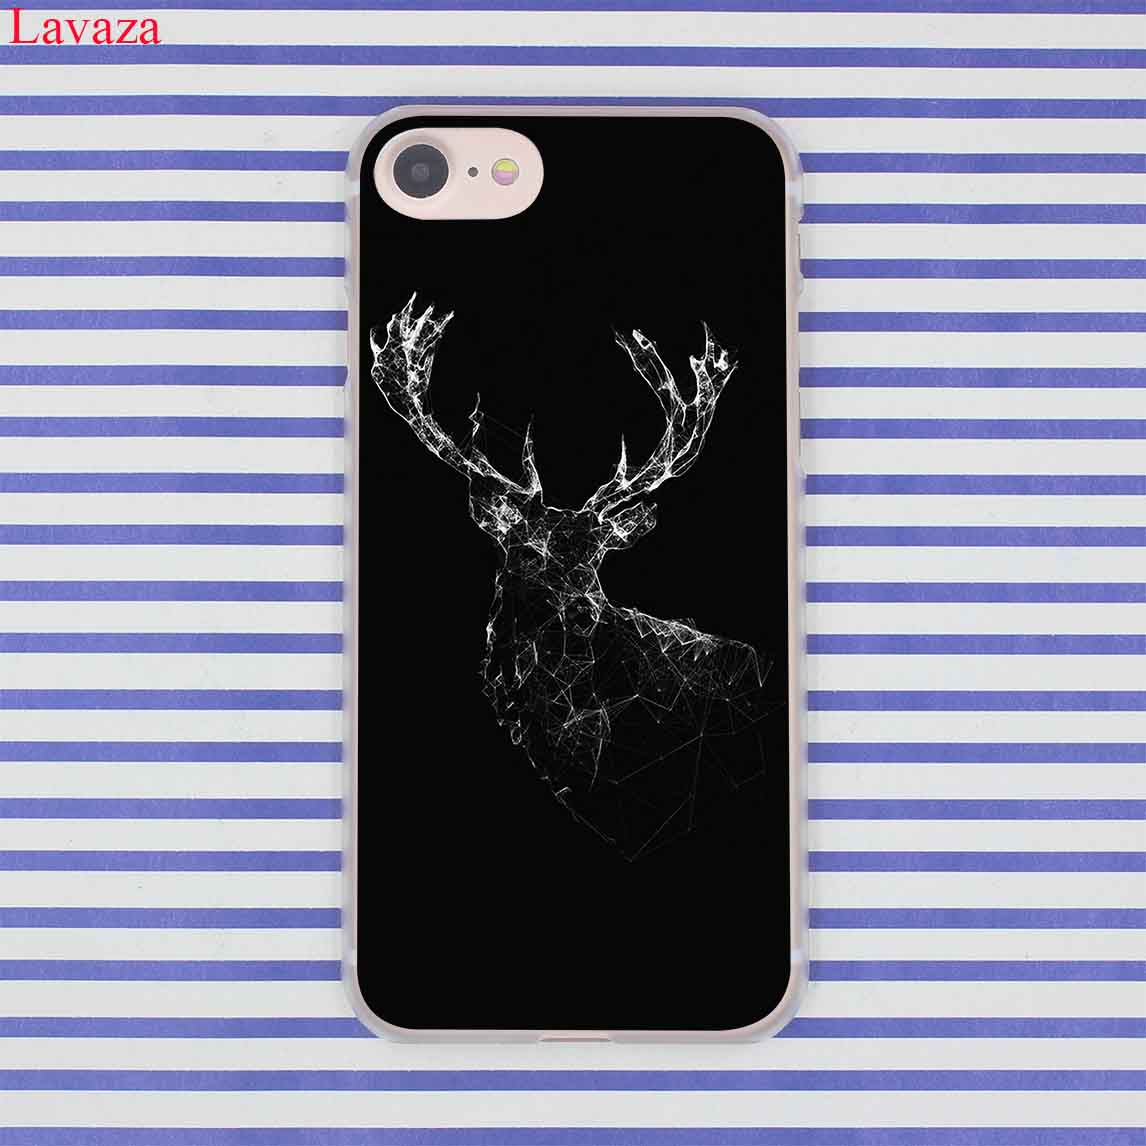 Lavaza Minimalist animal deer Minimalistic animals deer Hard Phone Case for Apple iPhone 8 7 6 6S Plus X 10 5 5S SE 5C 4 4S